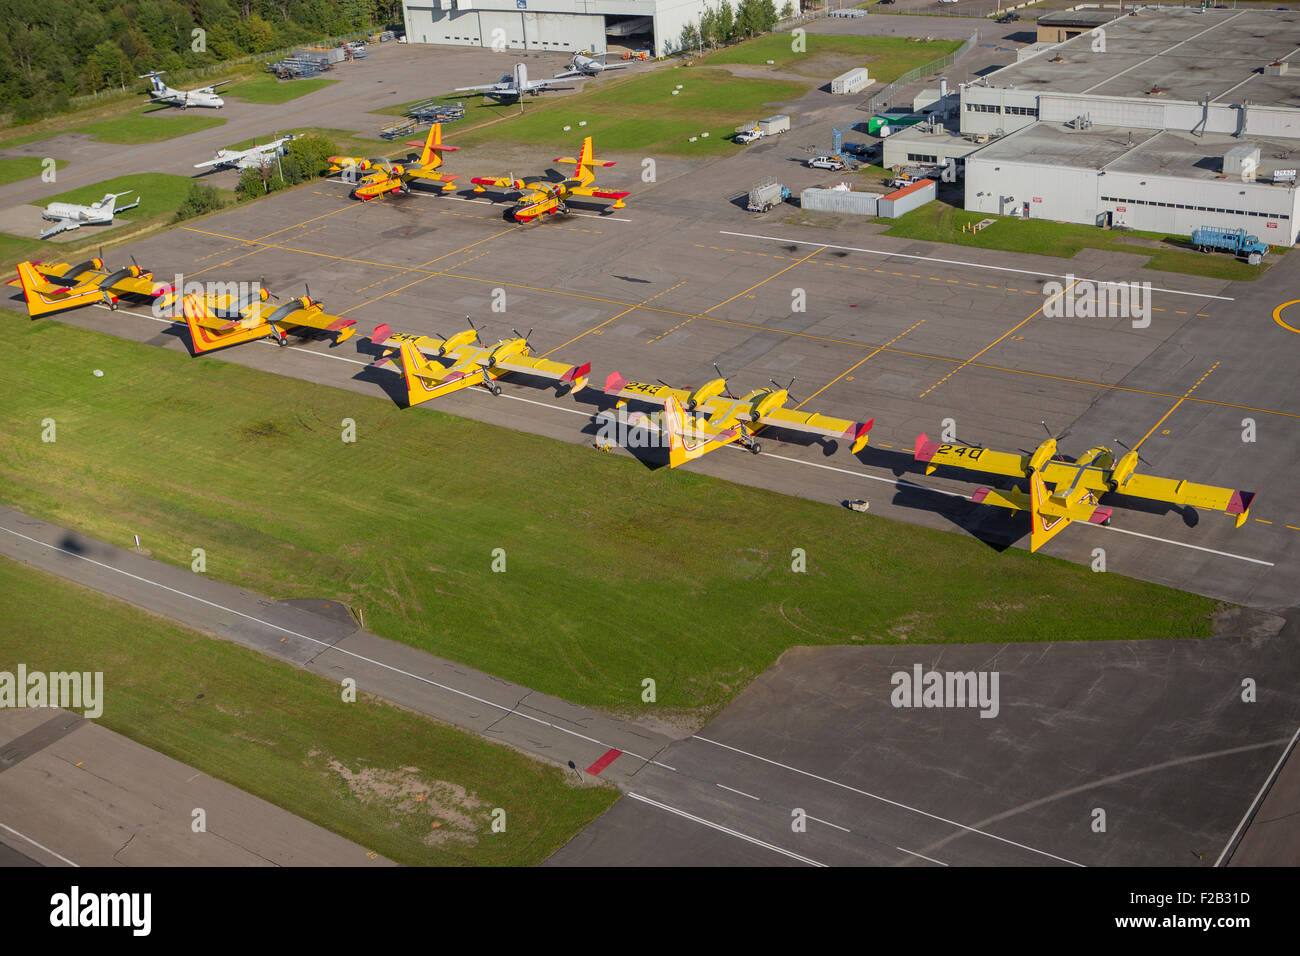 CL215, CL215T and CL415 water bombers are parked at the SOPFEU base at the Quebec city Jean Lesage airport in Quebec - Stock Image